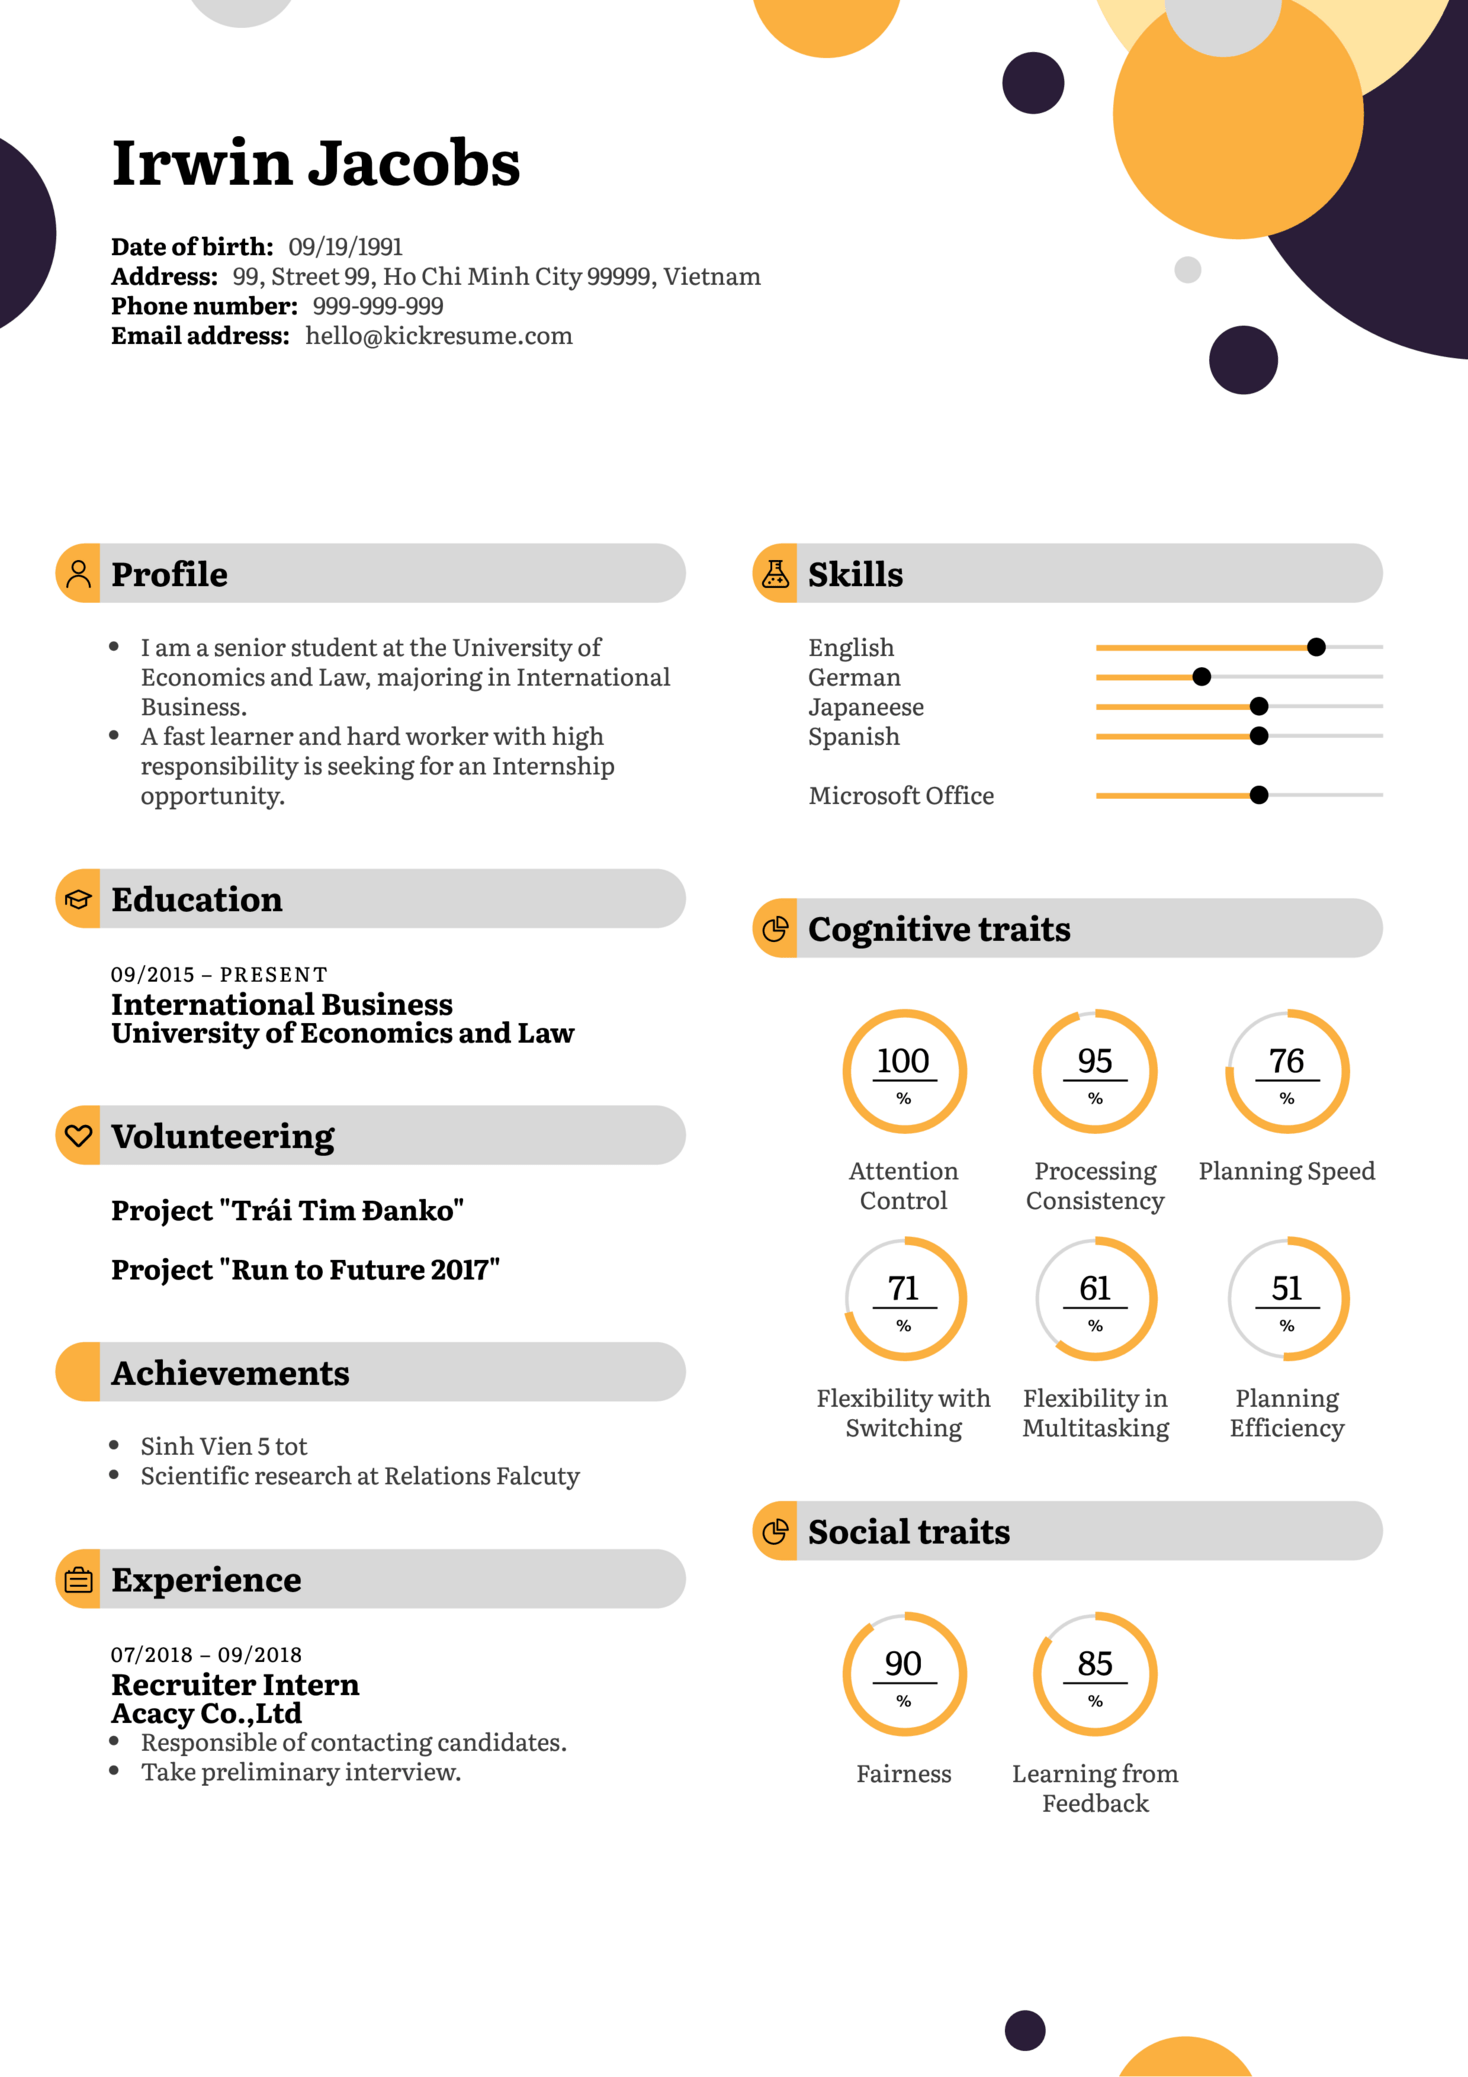 Human Resources Intern Resume Example (parte 1)